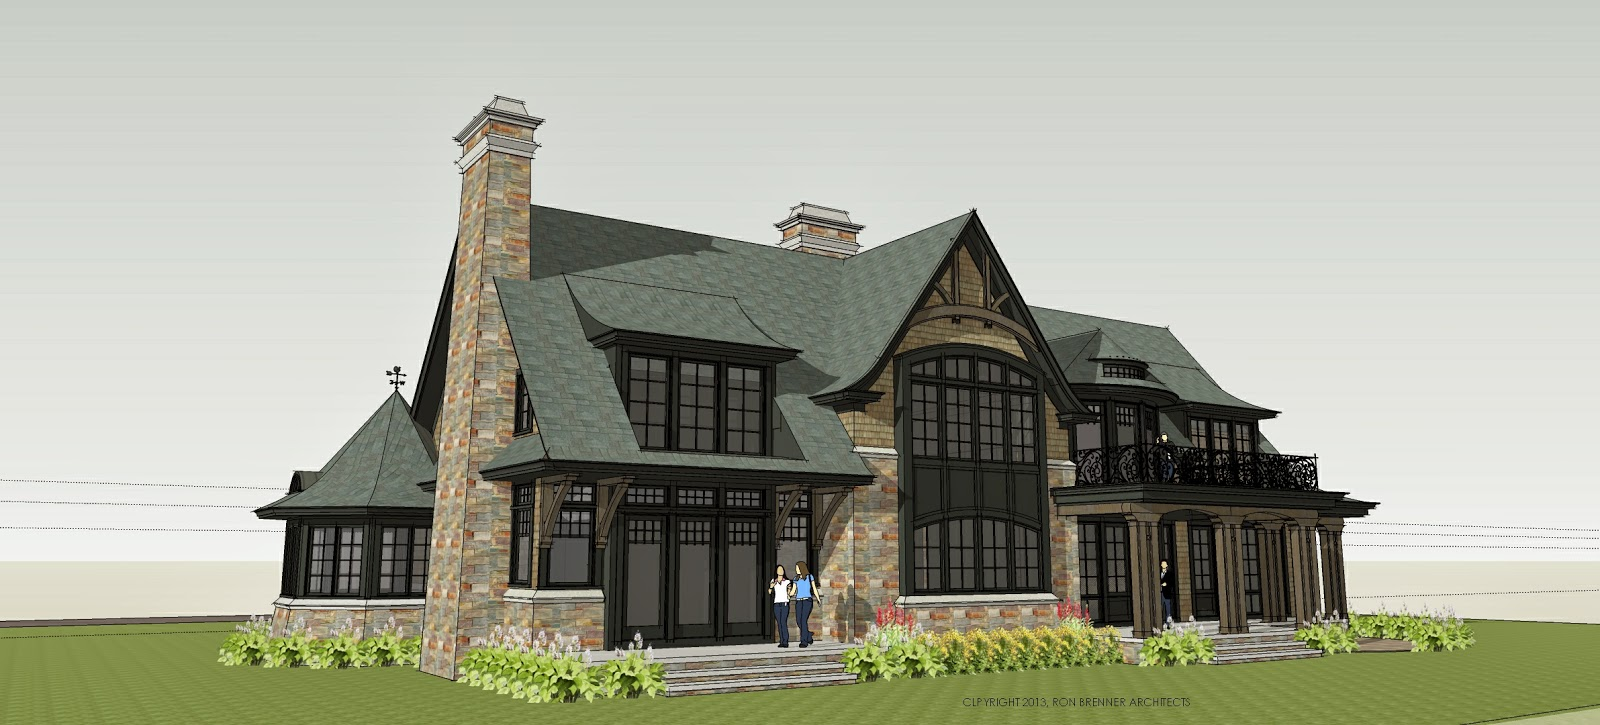 Lshaped Ranch Style House Plans Apartment Interior Design